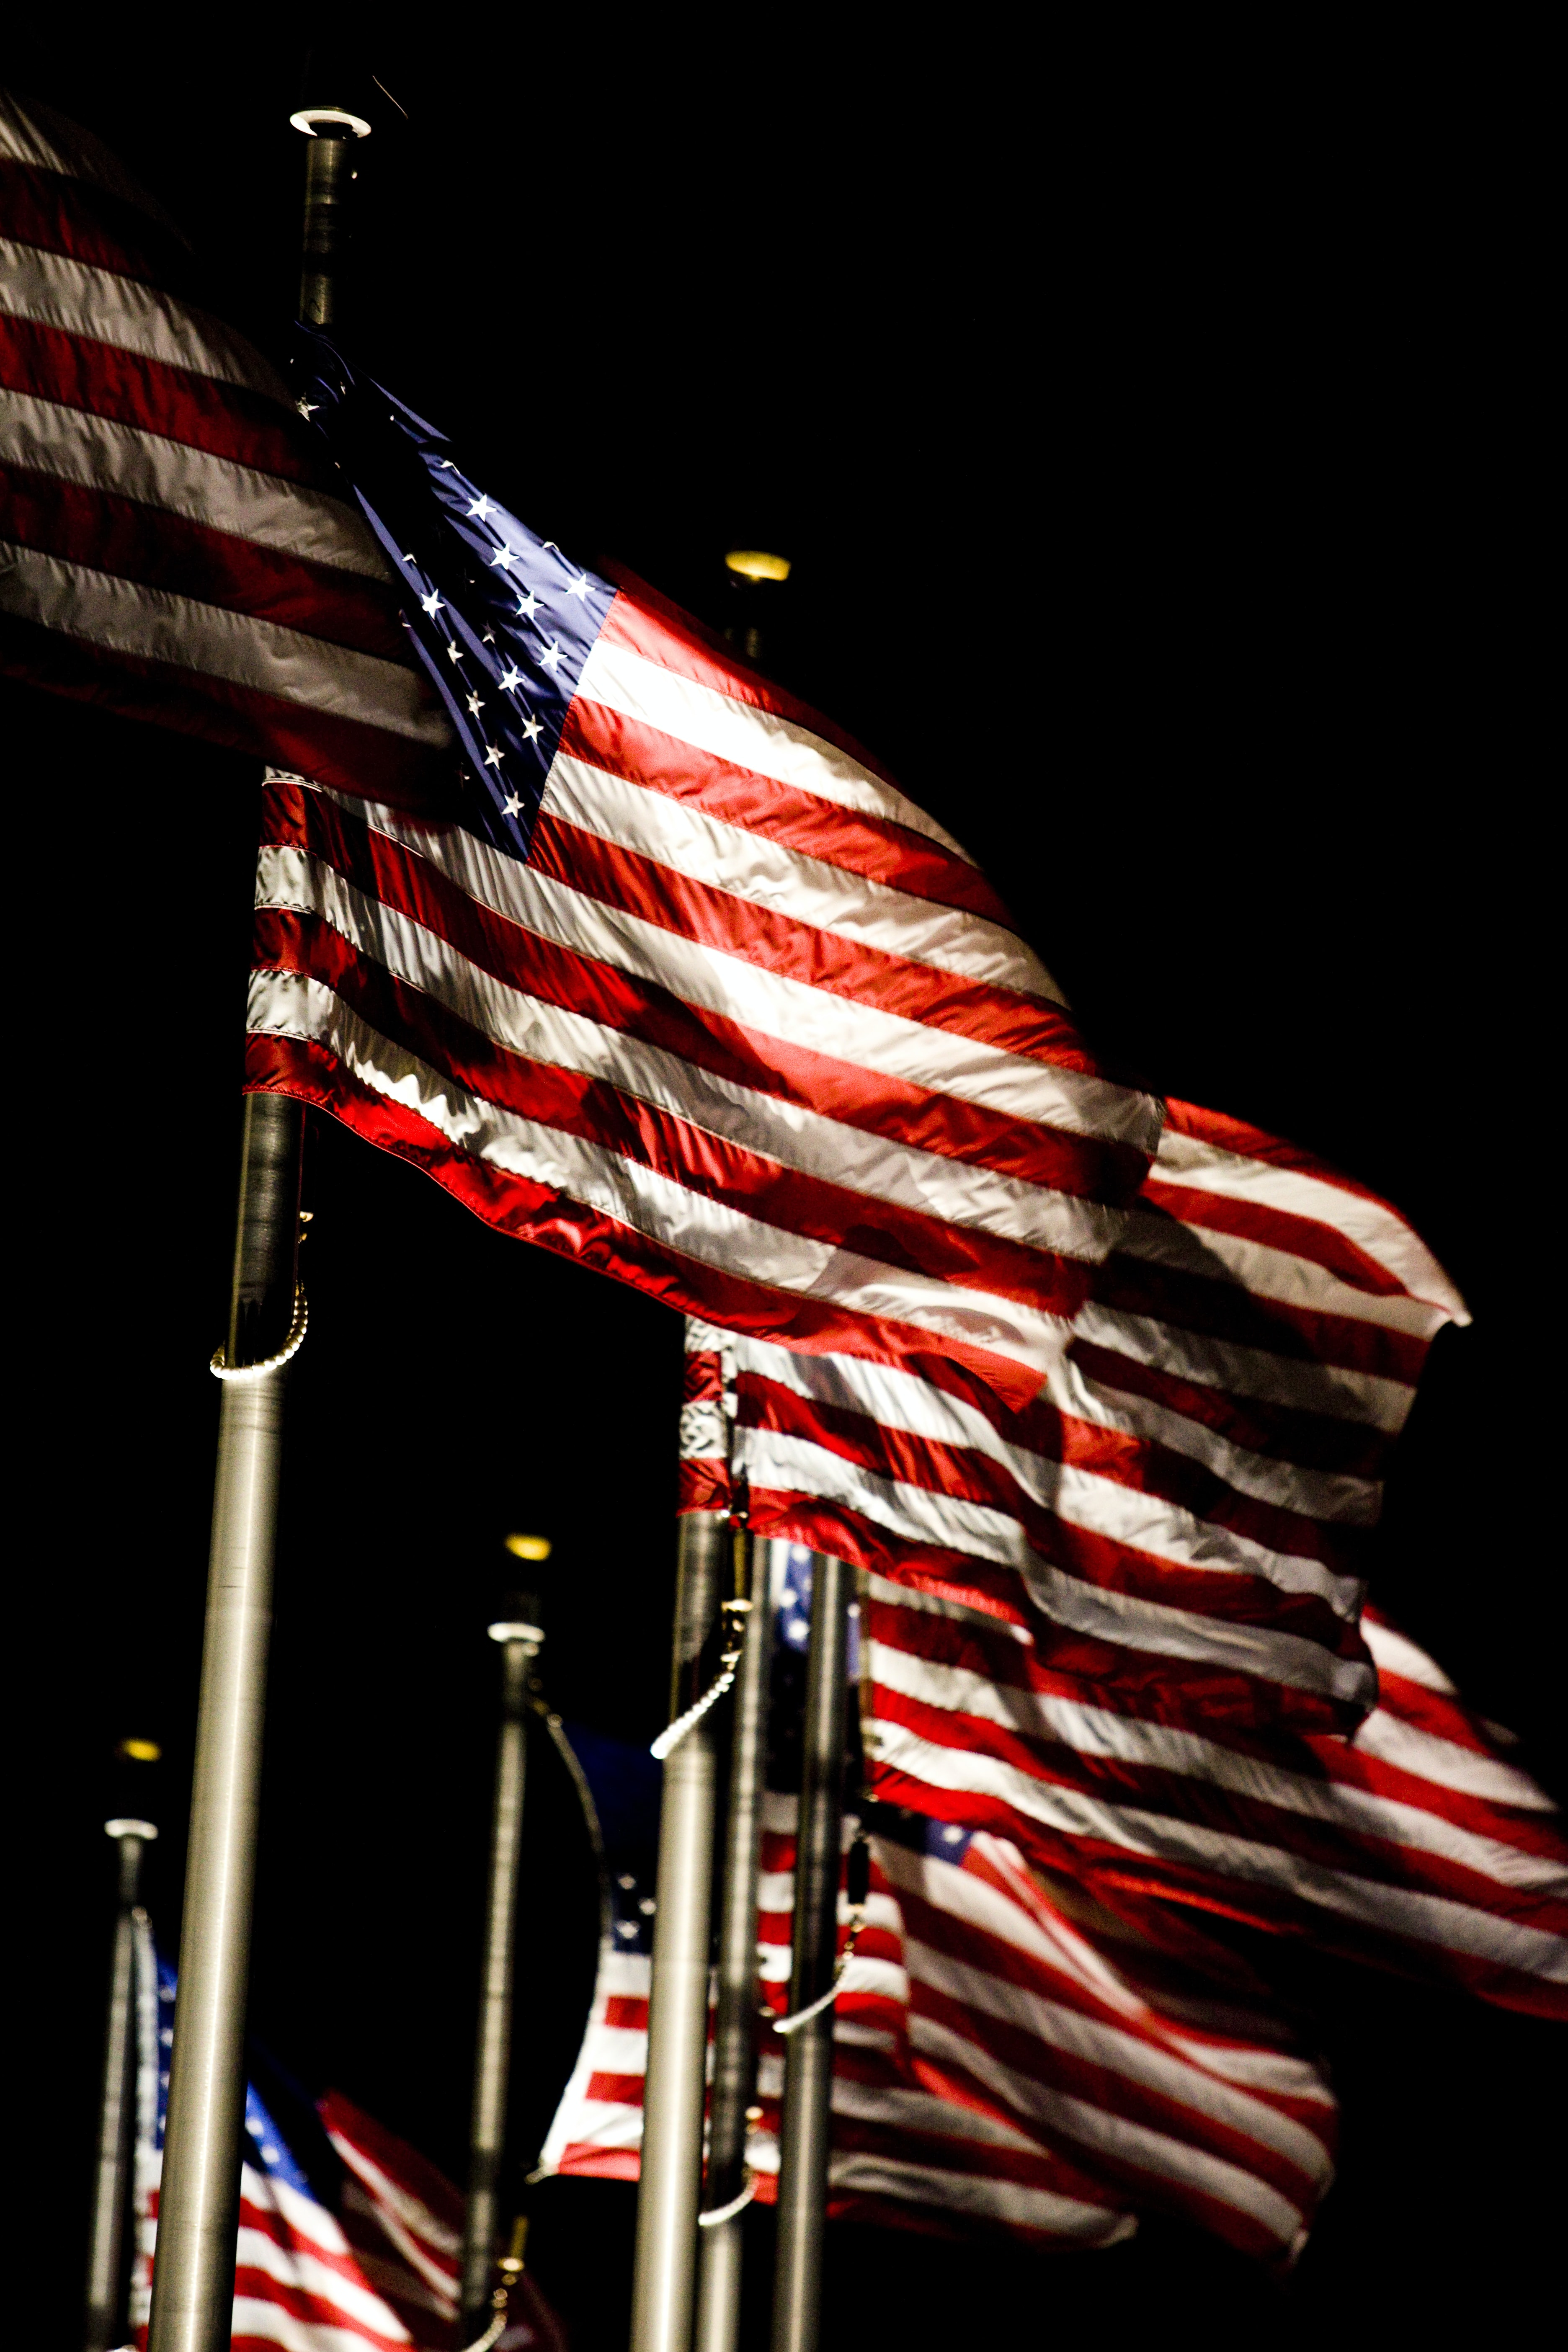 flags of the United States of America on flag poles under dark sky